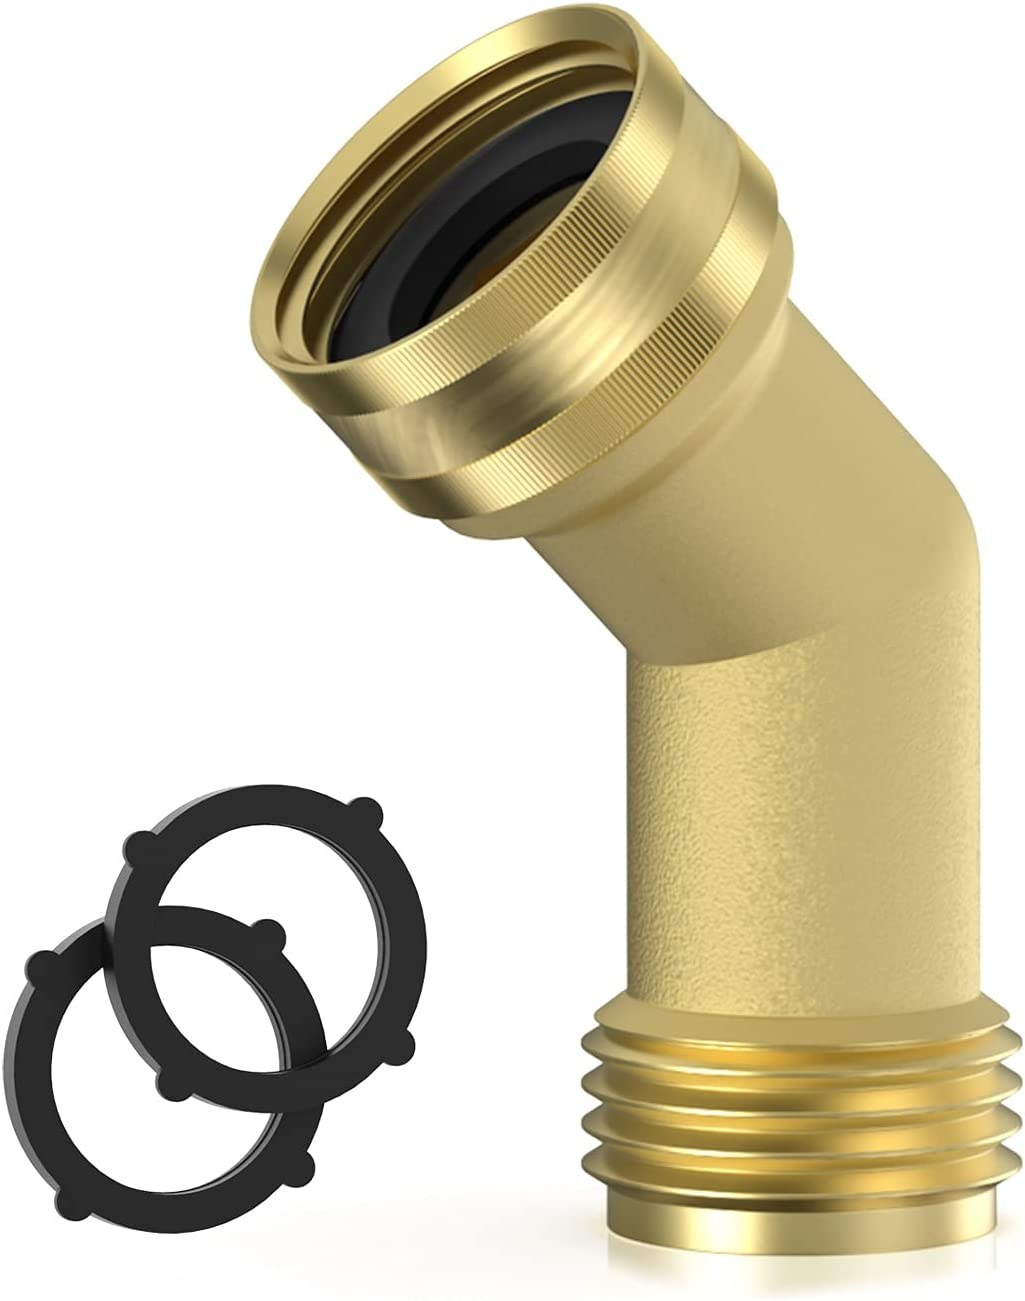 FRIZZLIFE Garden Hose New Ranking TOP16 life Elbow Connector Brass Adapter